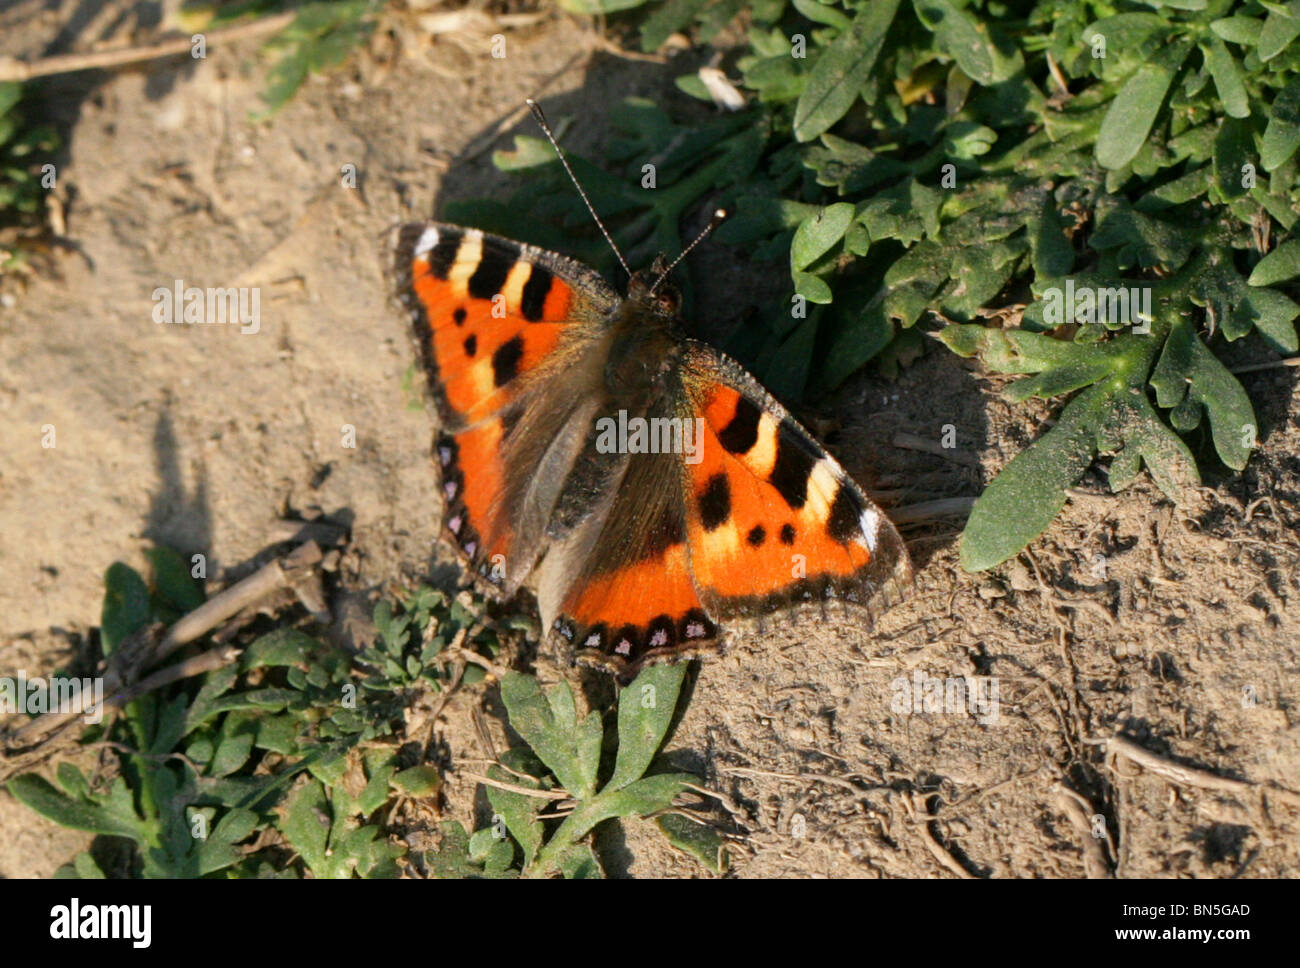 Small Tortoiseshell Butterfly, Nymphalis urticae, Nymphalidae. Sunbathing on a Dirt Track. - Stock Image